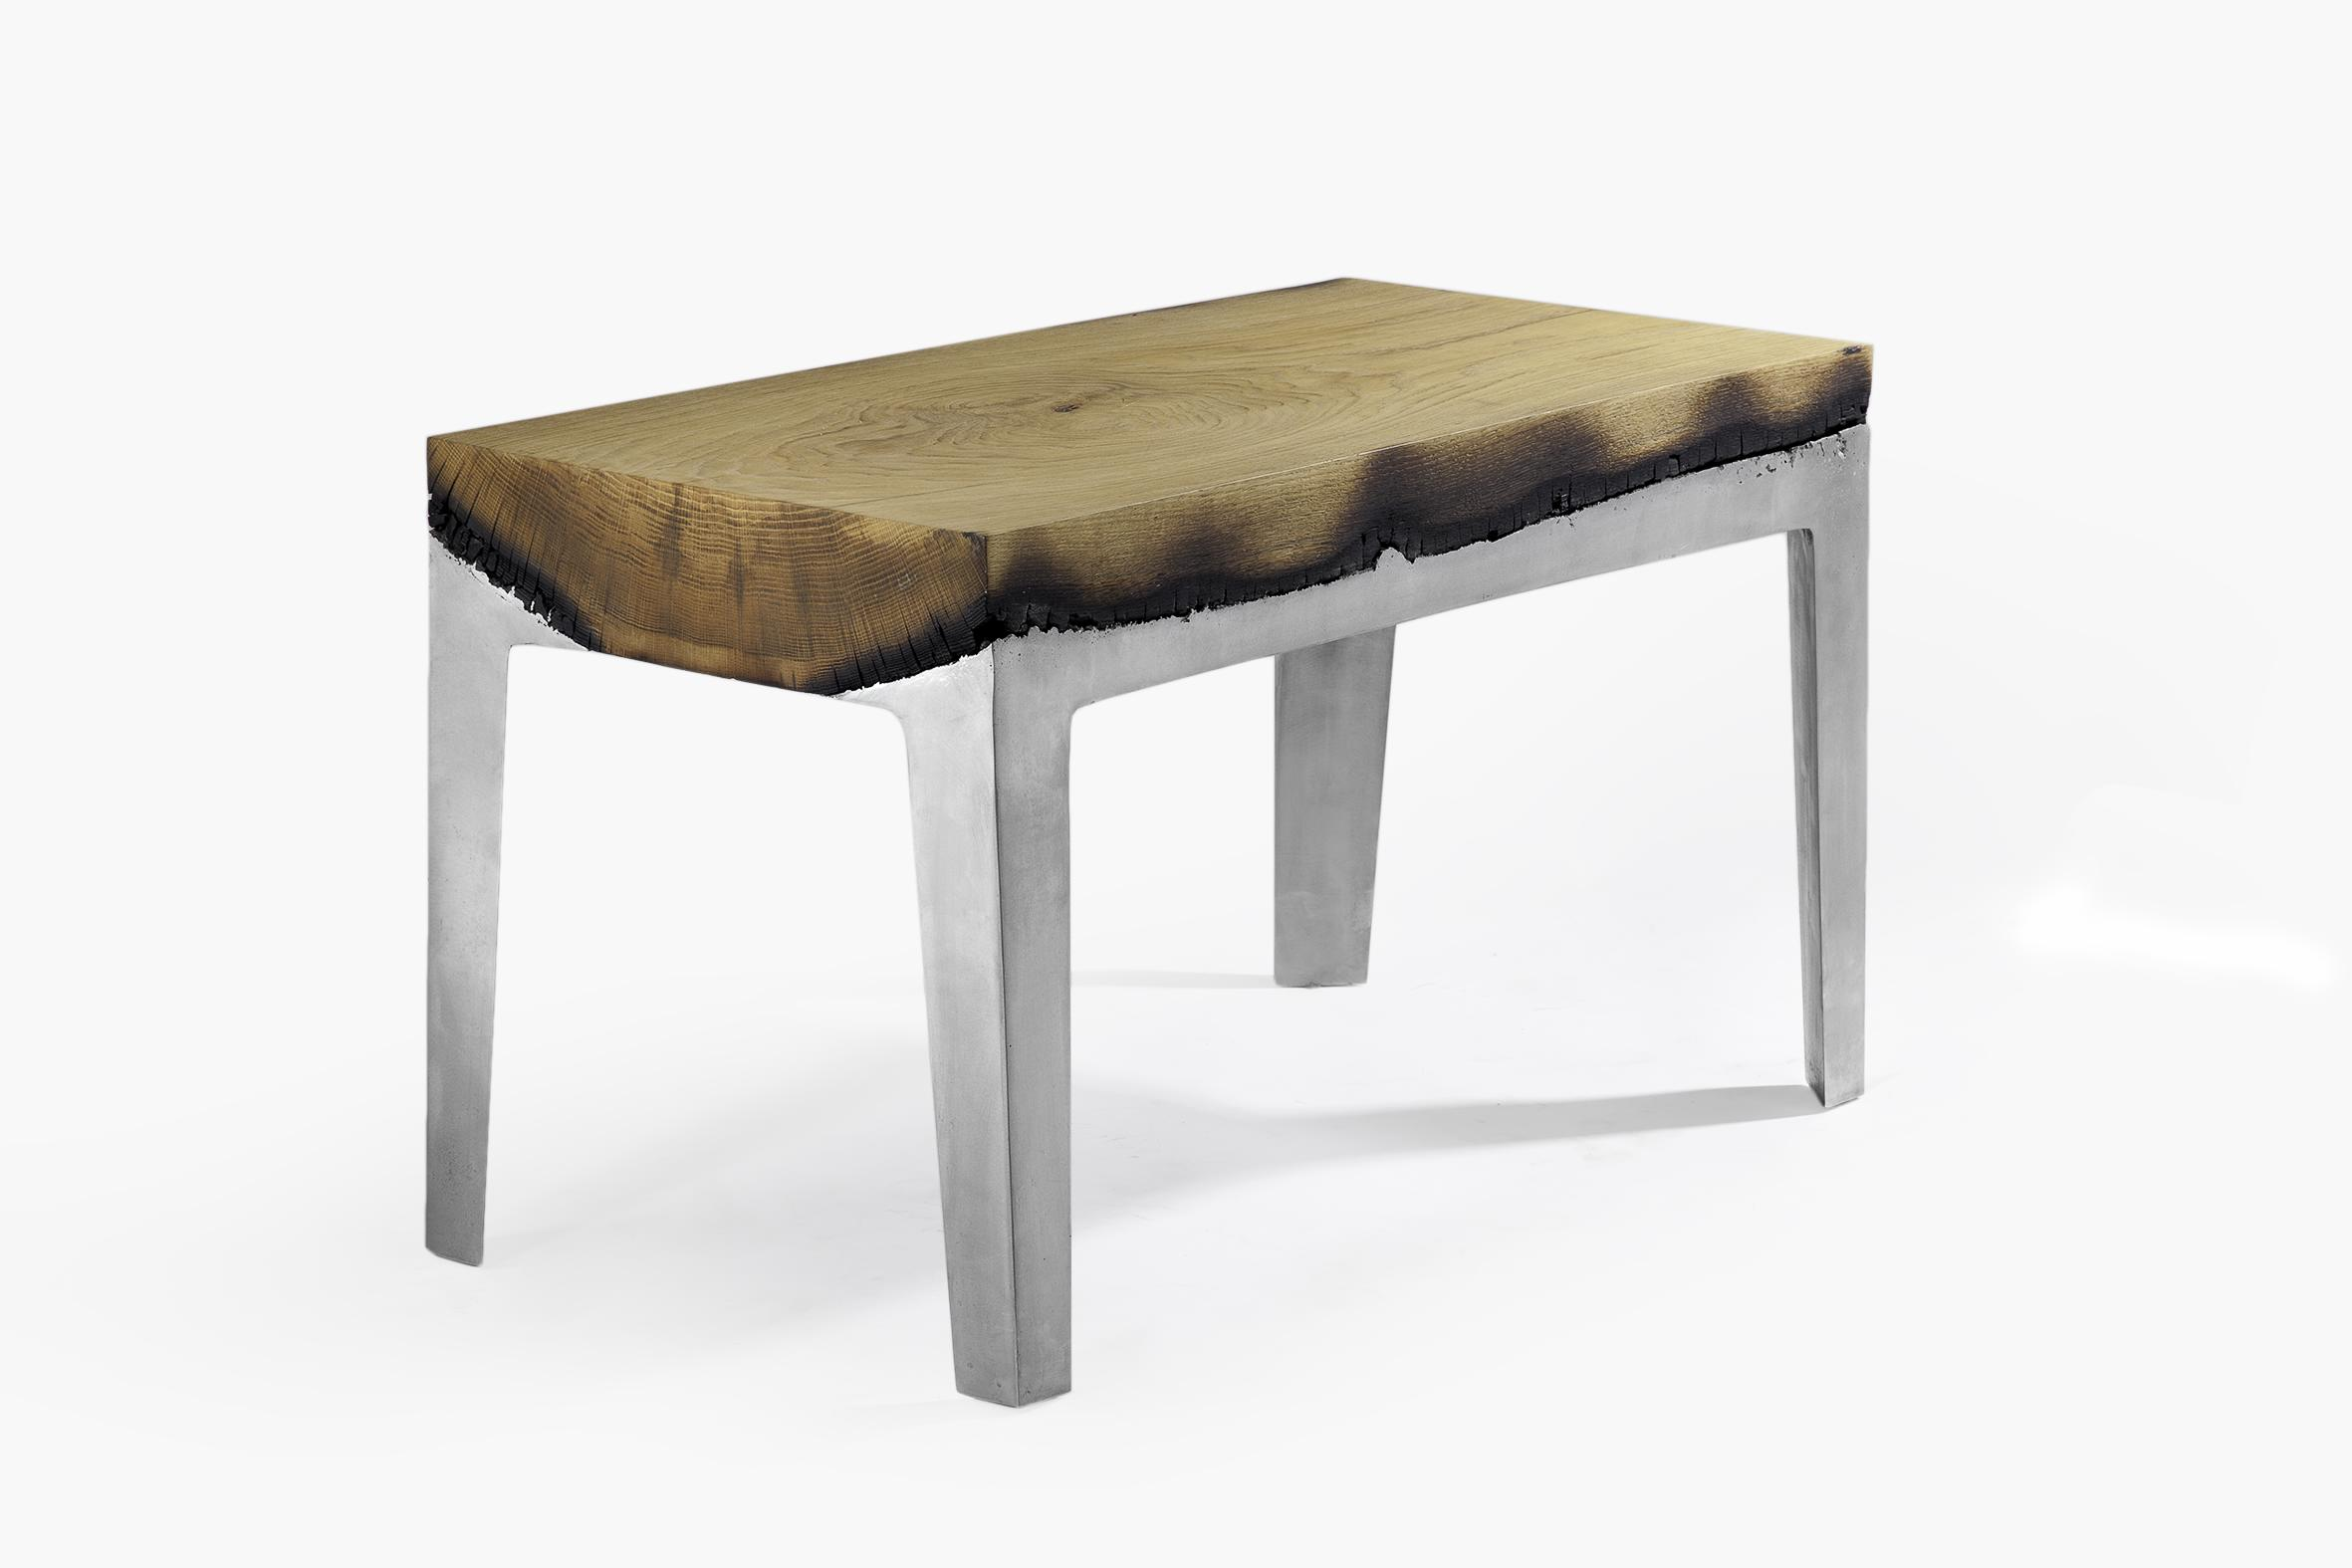 Oak Coffee Table, 50X90X50 cm